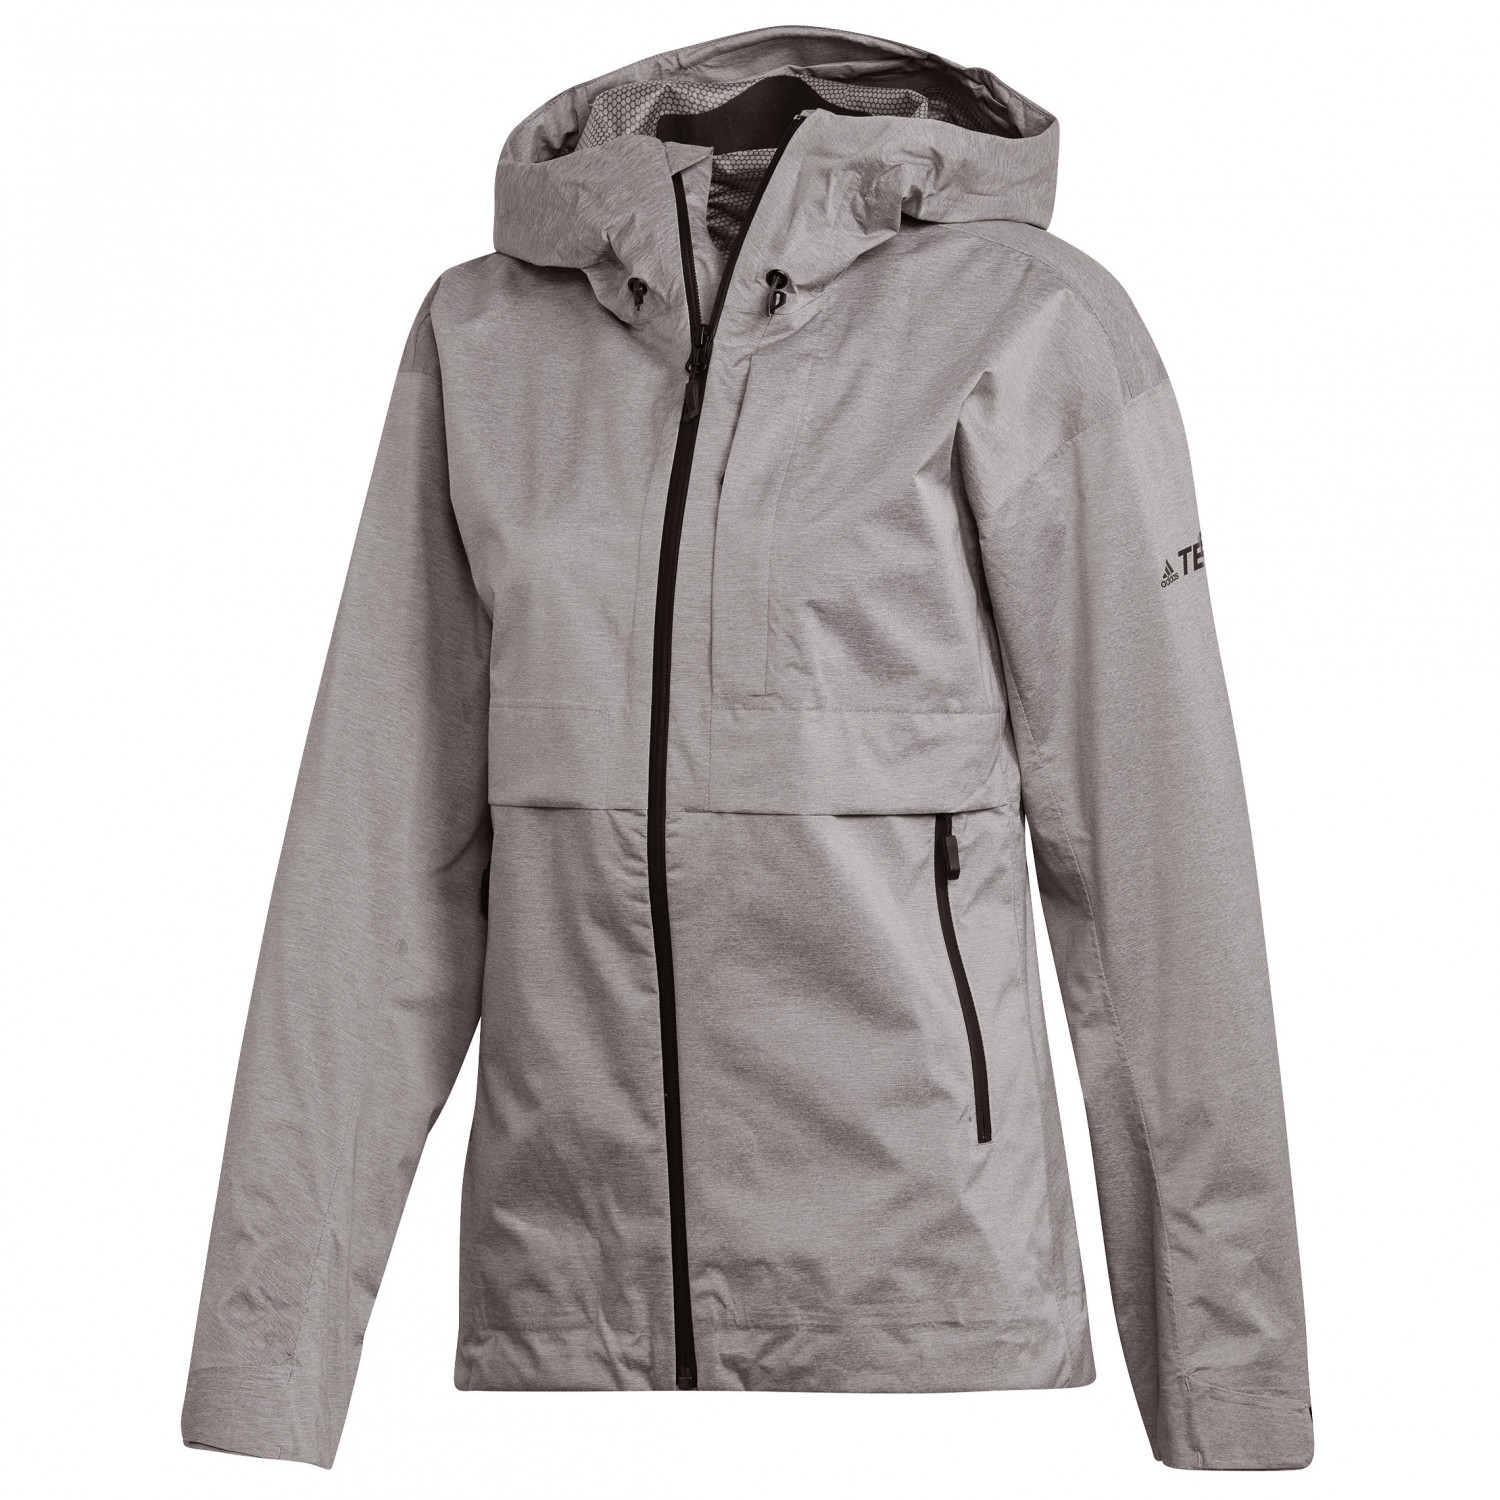 7a237defd Adidas Swift Pro 2.5L Jacket - Waterproof Jacket Women's | Buy ...